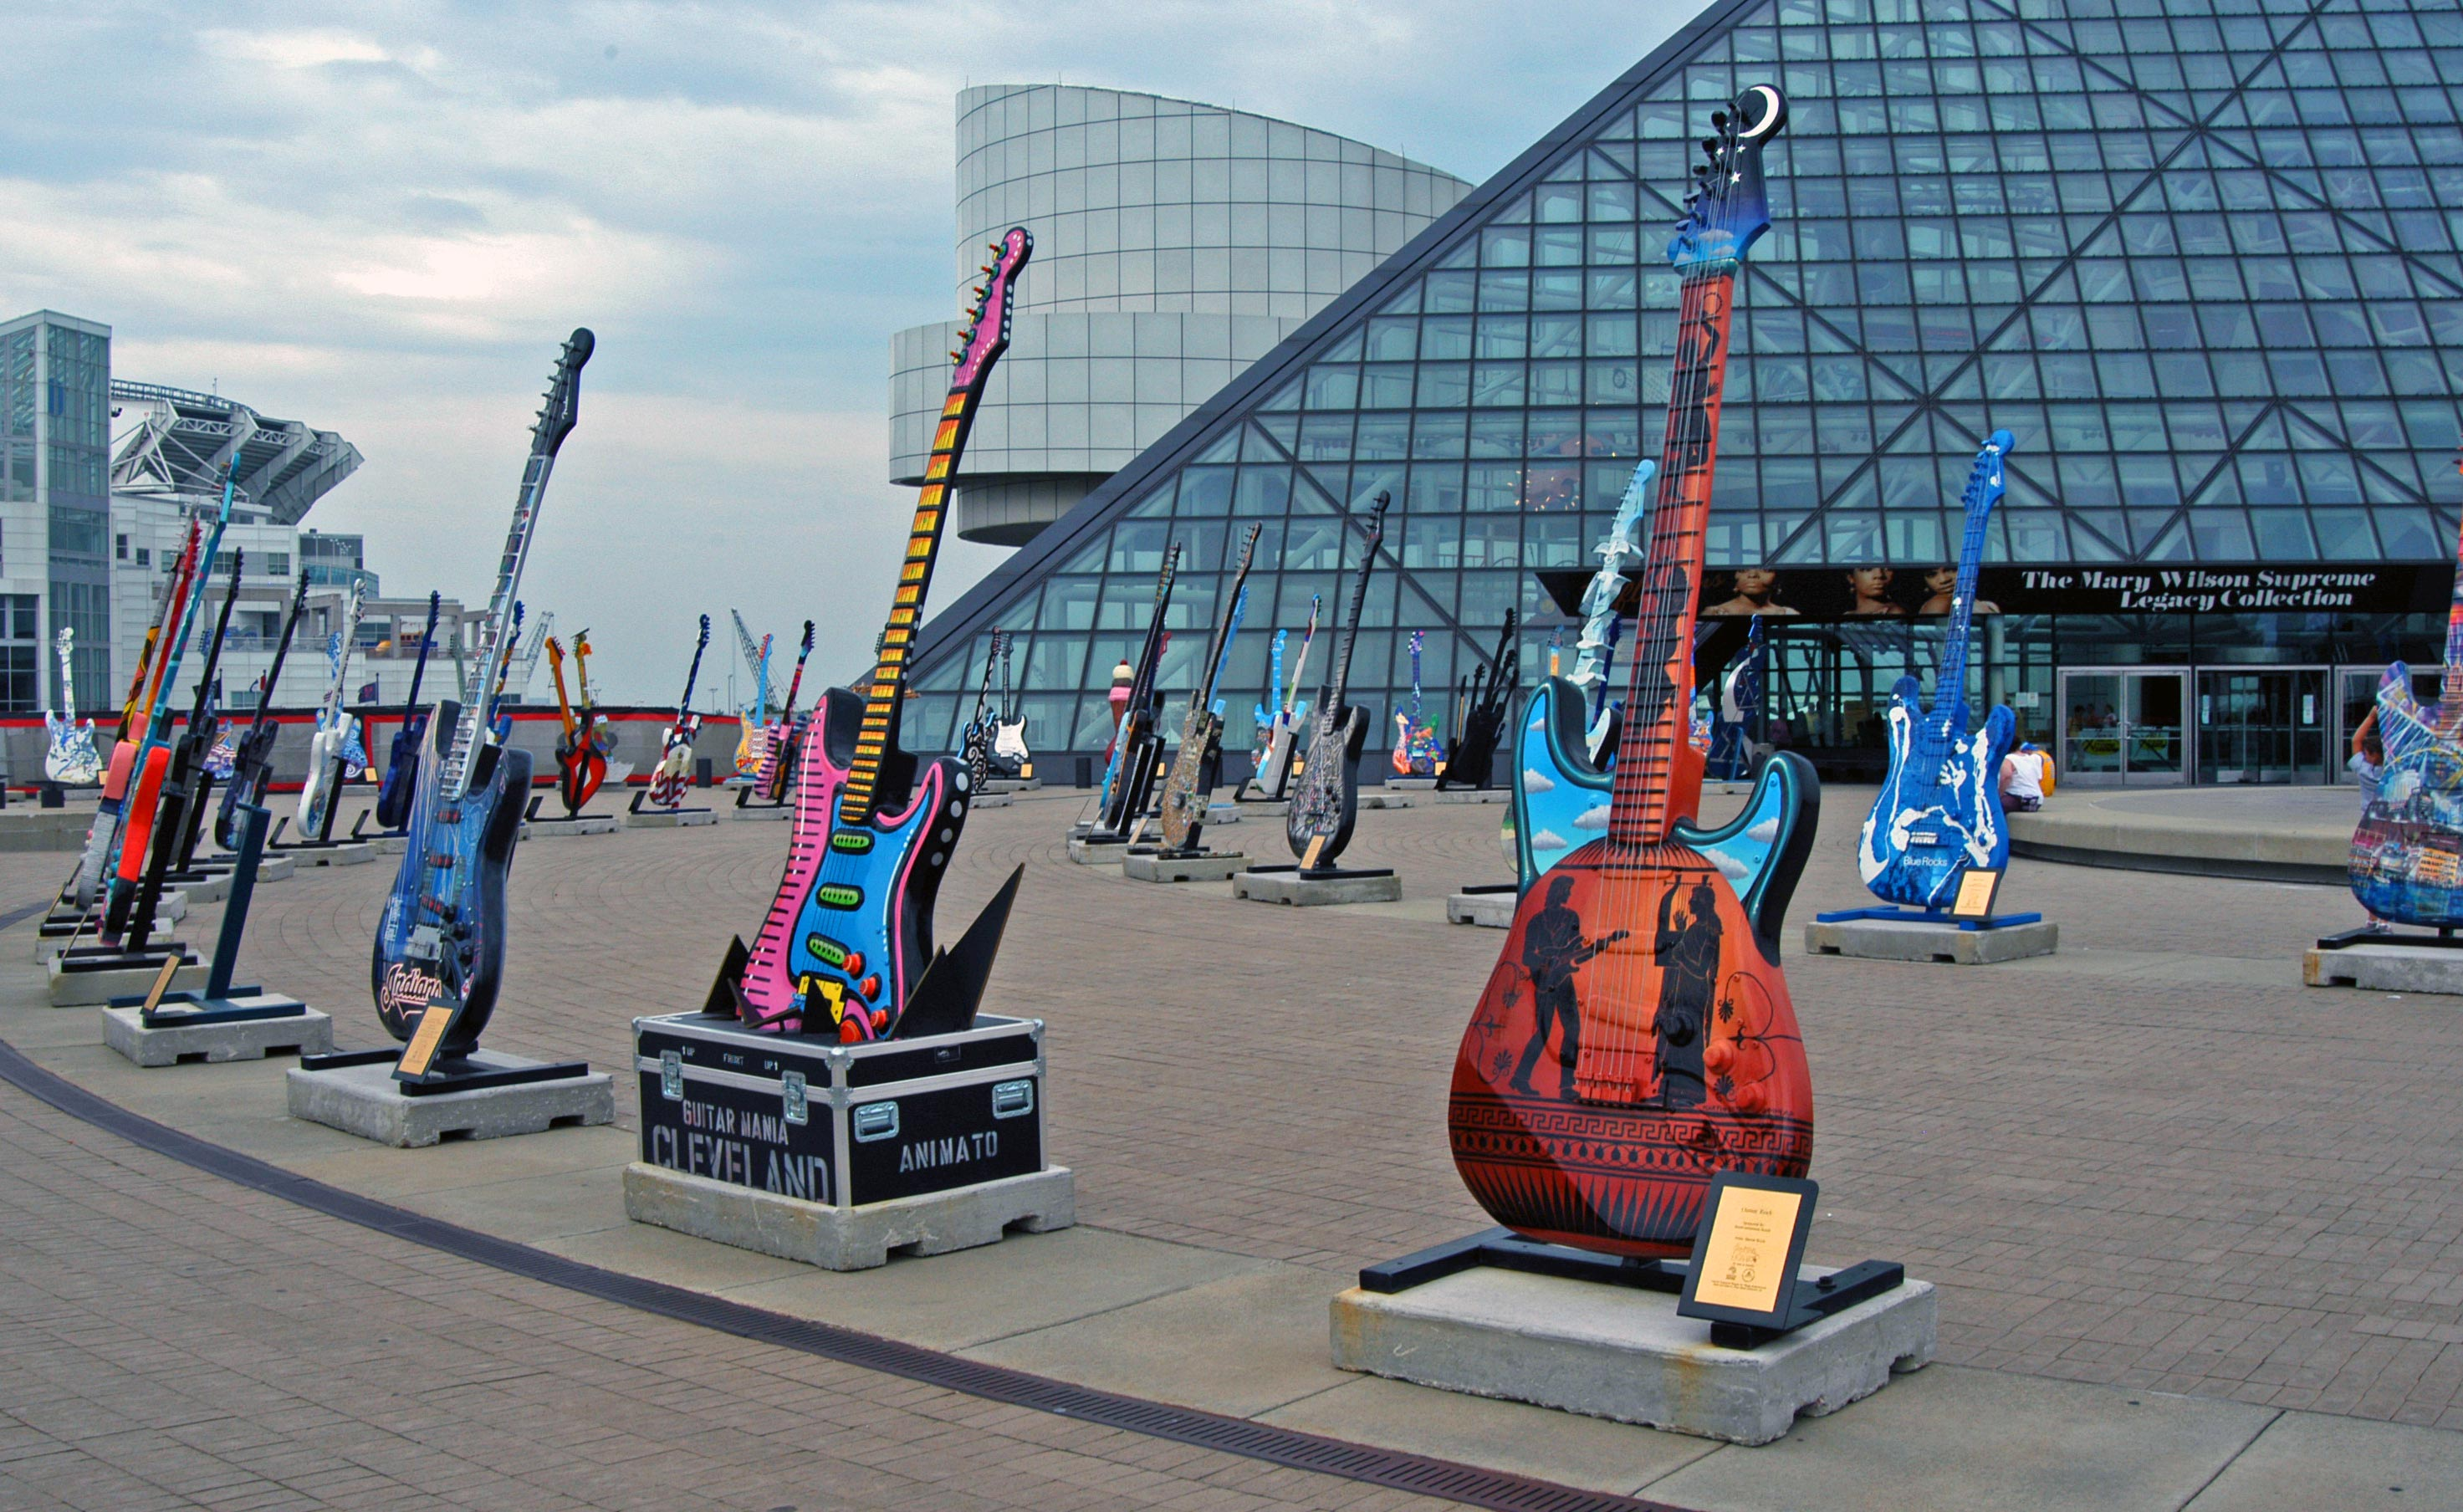 le Rock & Roll Hall of Fame & Museum